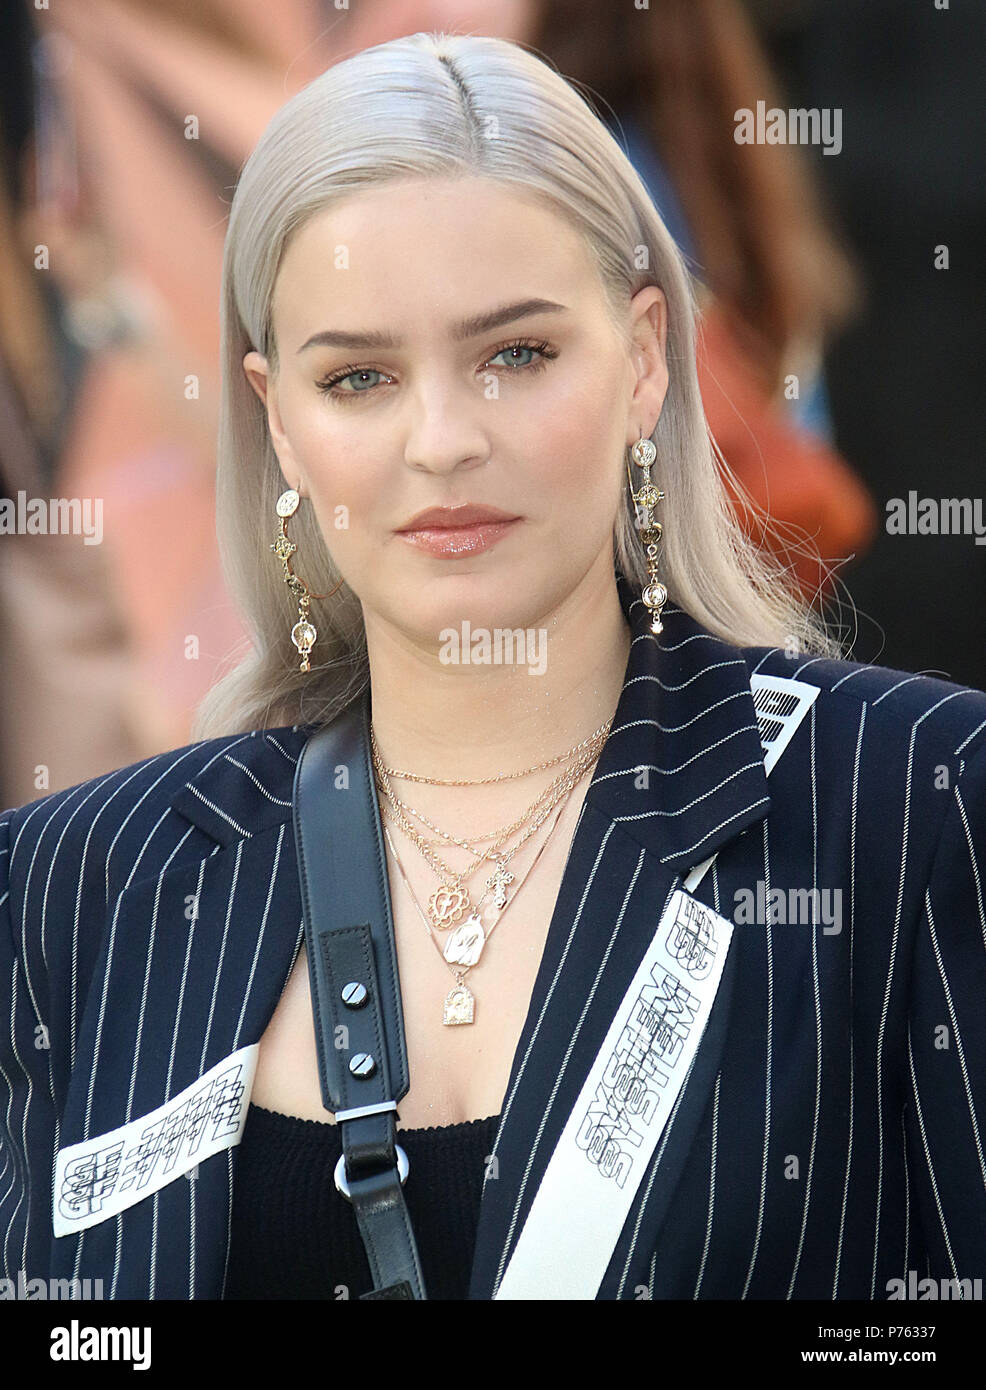 Jun 06, 2018 - Anne-Marie attending Royal Academy Of Arts 250th Summer Exhibition Preview Party at Burlington House in London, England, UK - Stock Image